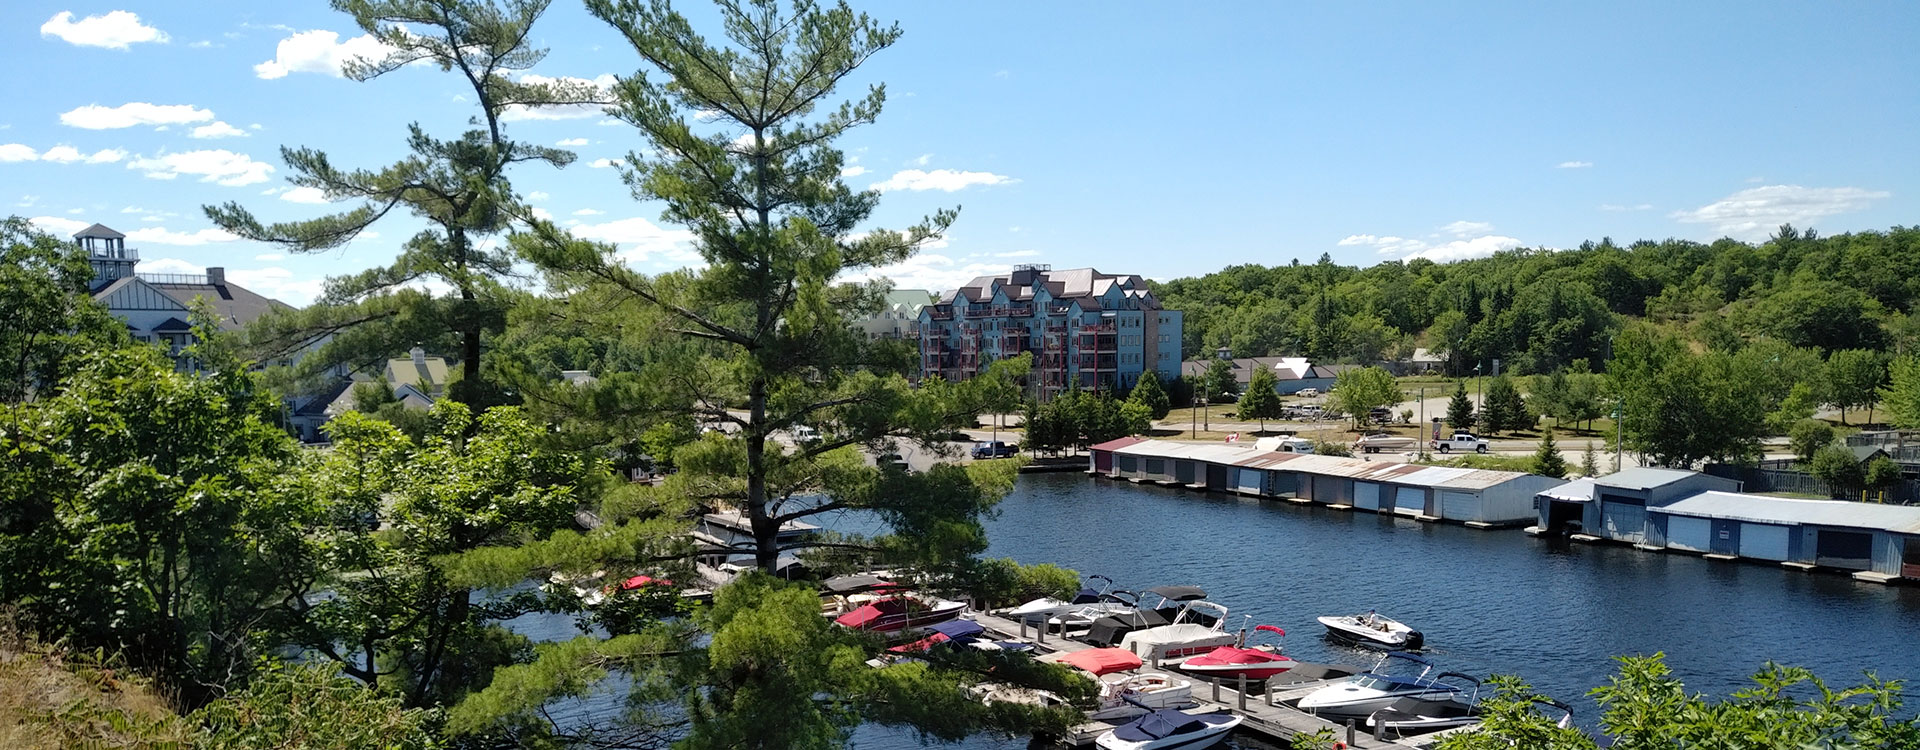 Muskoka Wharf Marina, summertime picture with boats and appartments in the background